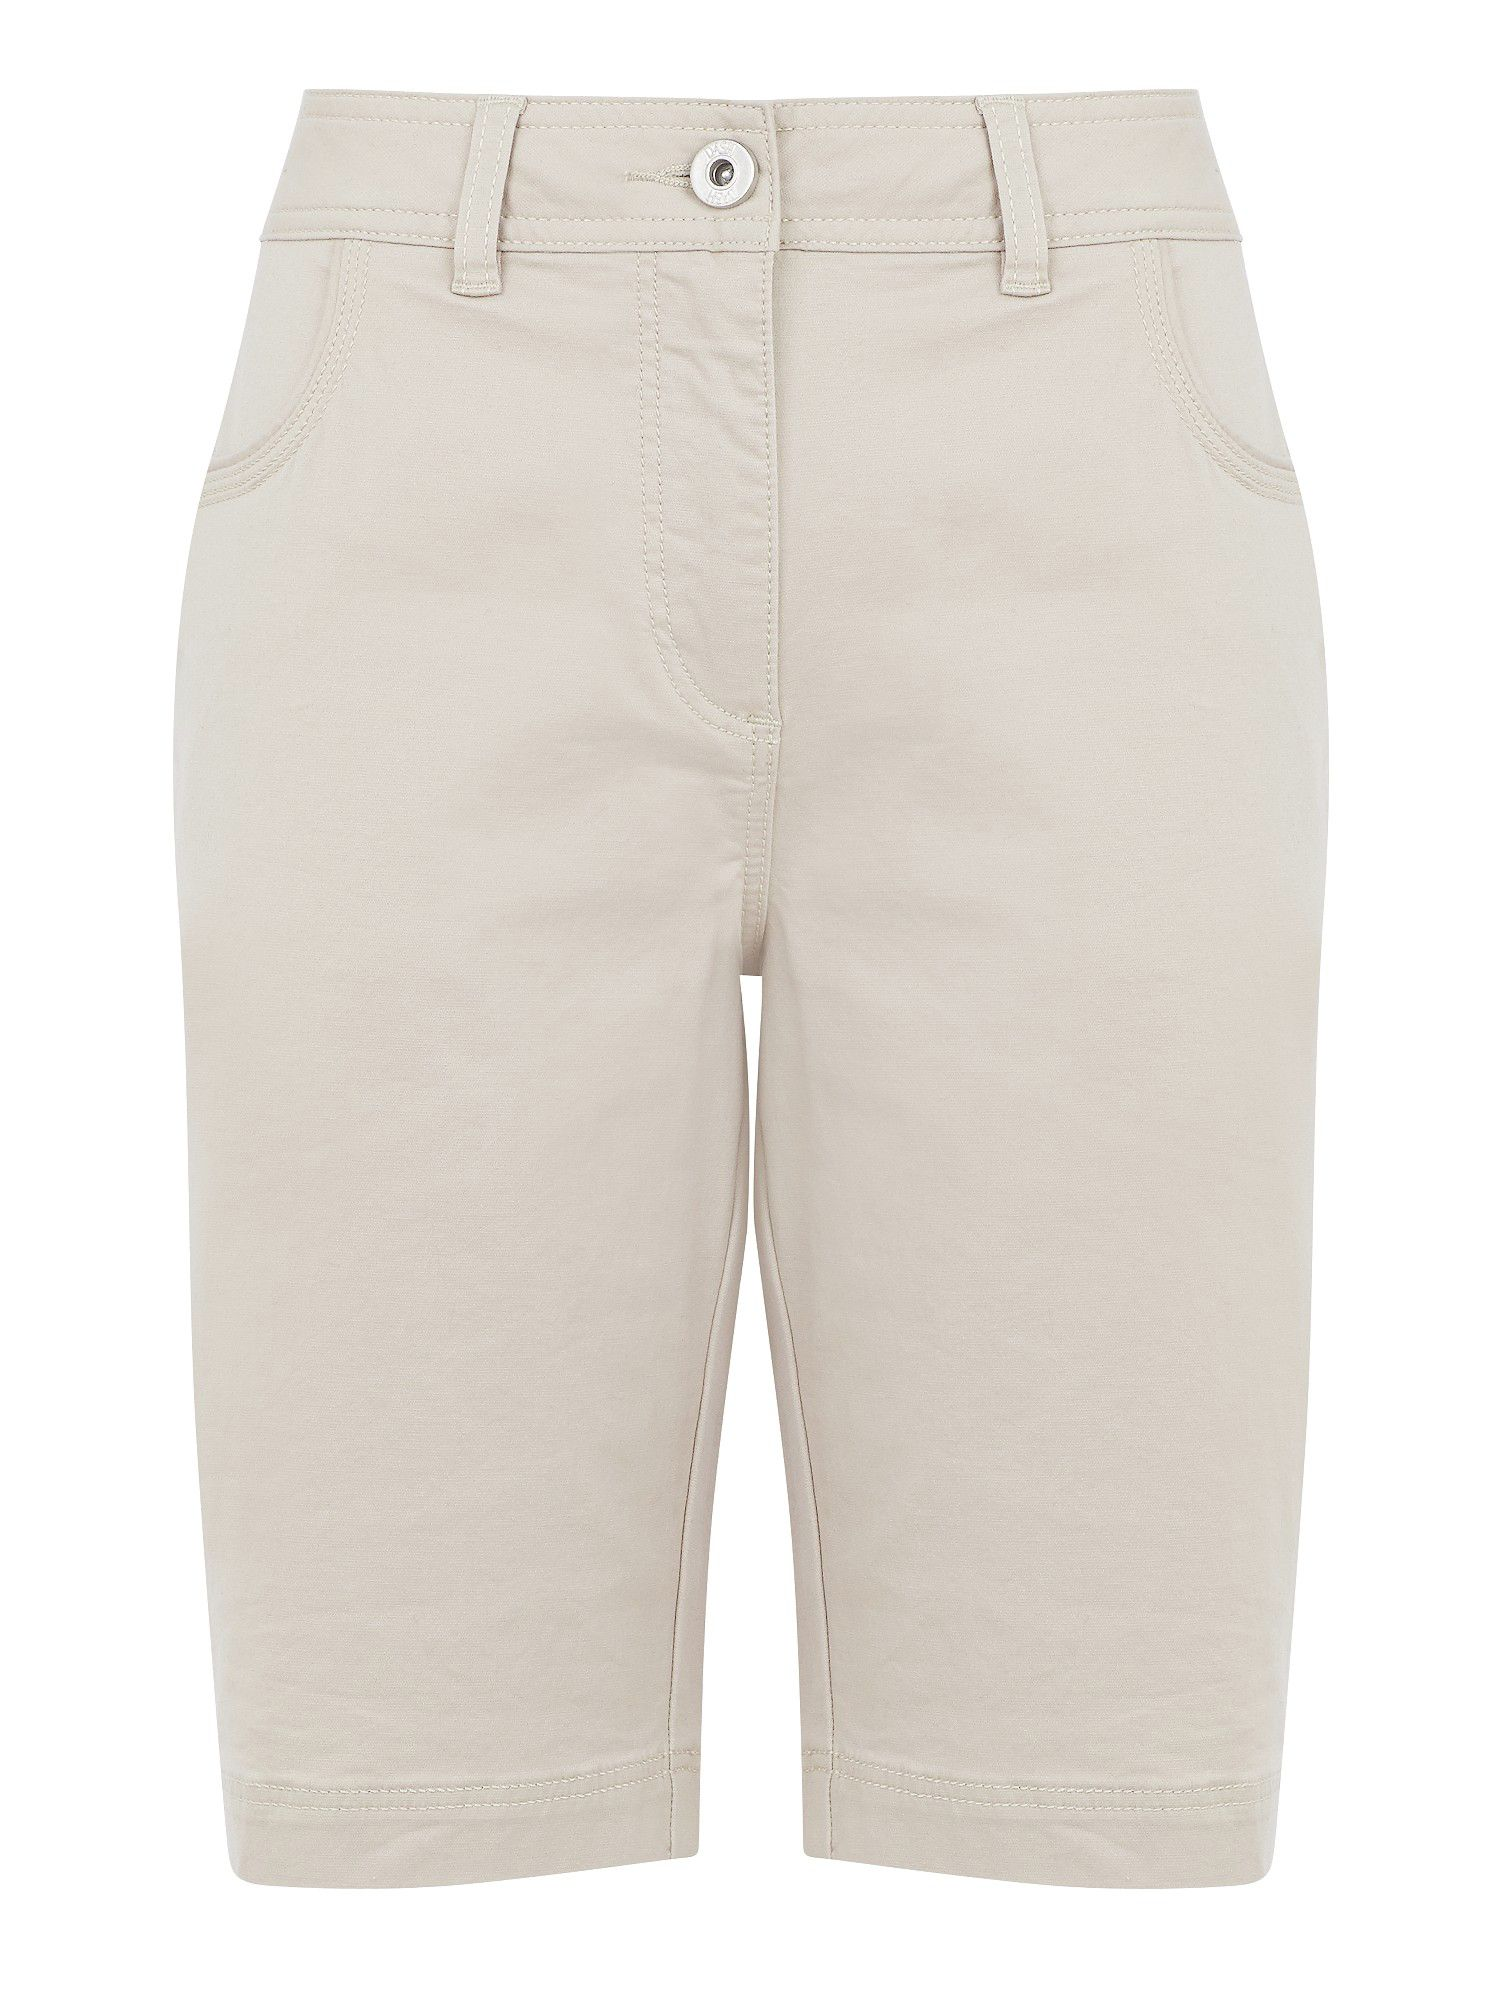 Stone cotton twill city short